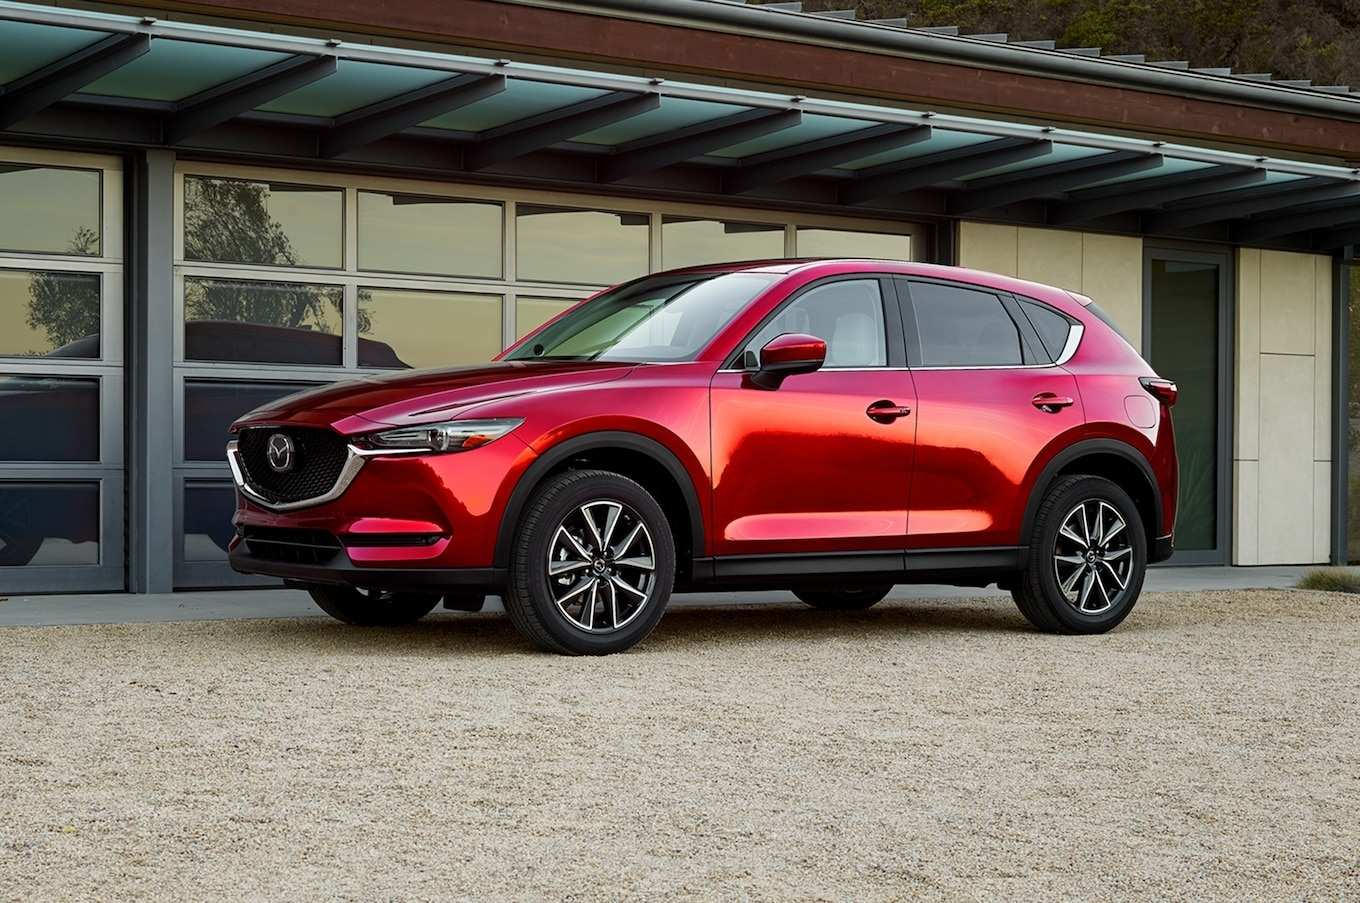 80 All New Mazda 2019 Cx 5 Concept Redesign by Mazda 2019 Cx 5 Concept